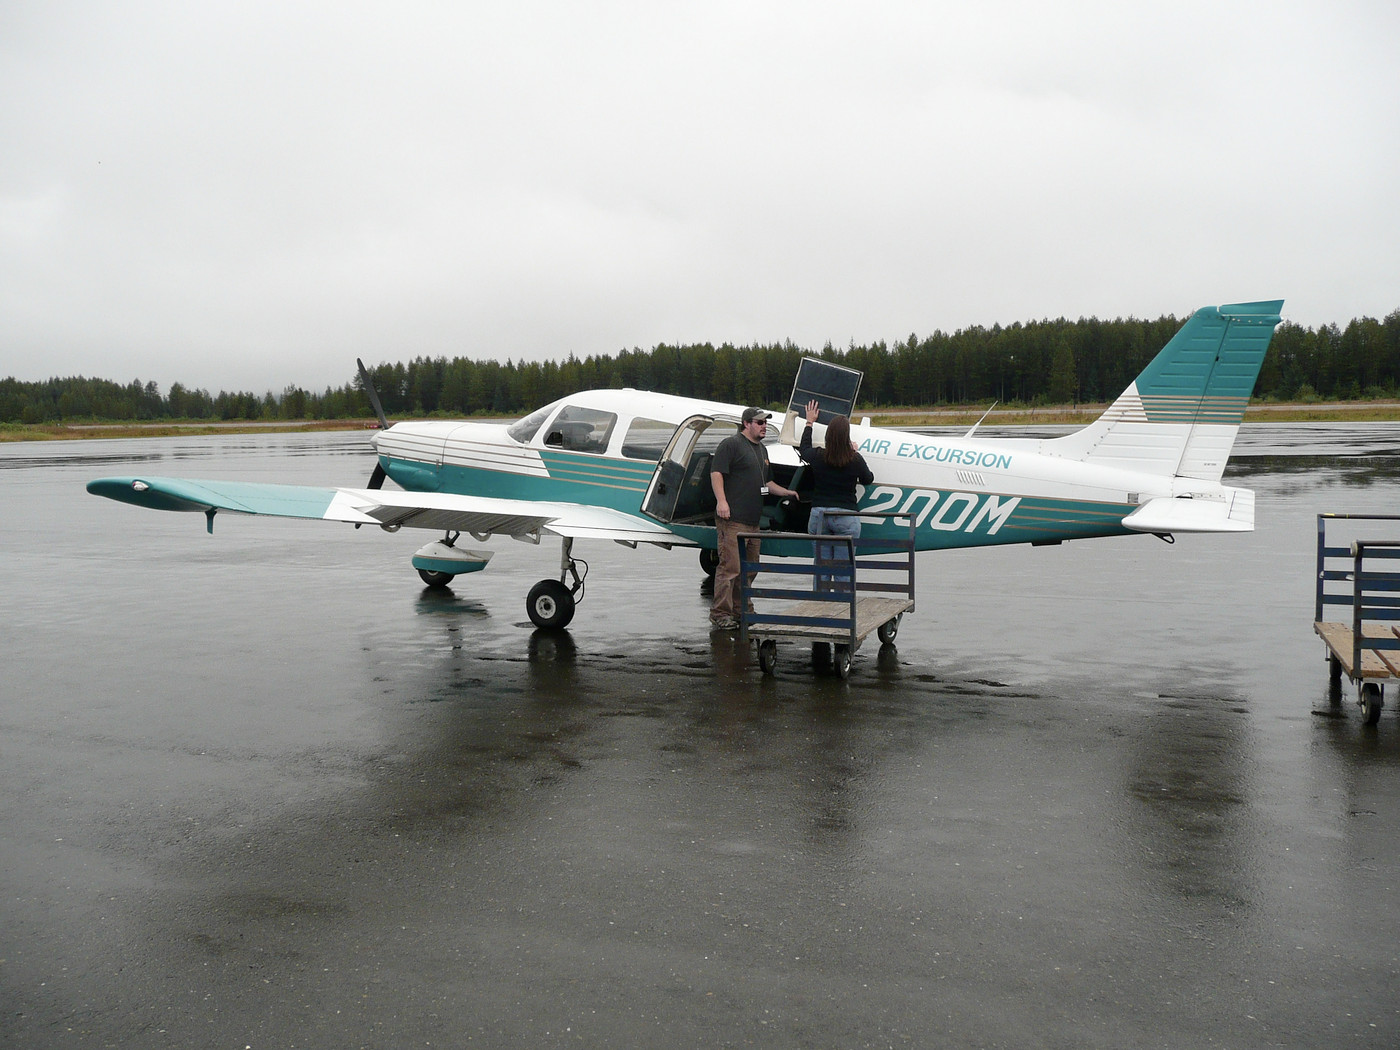 Gustavus airport and Cessna 206